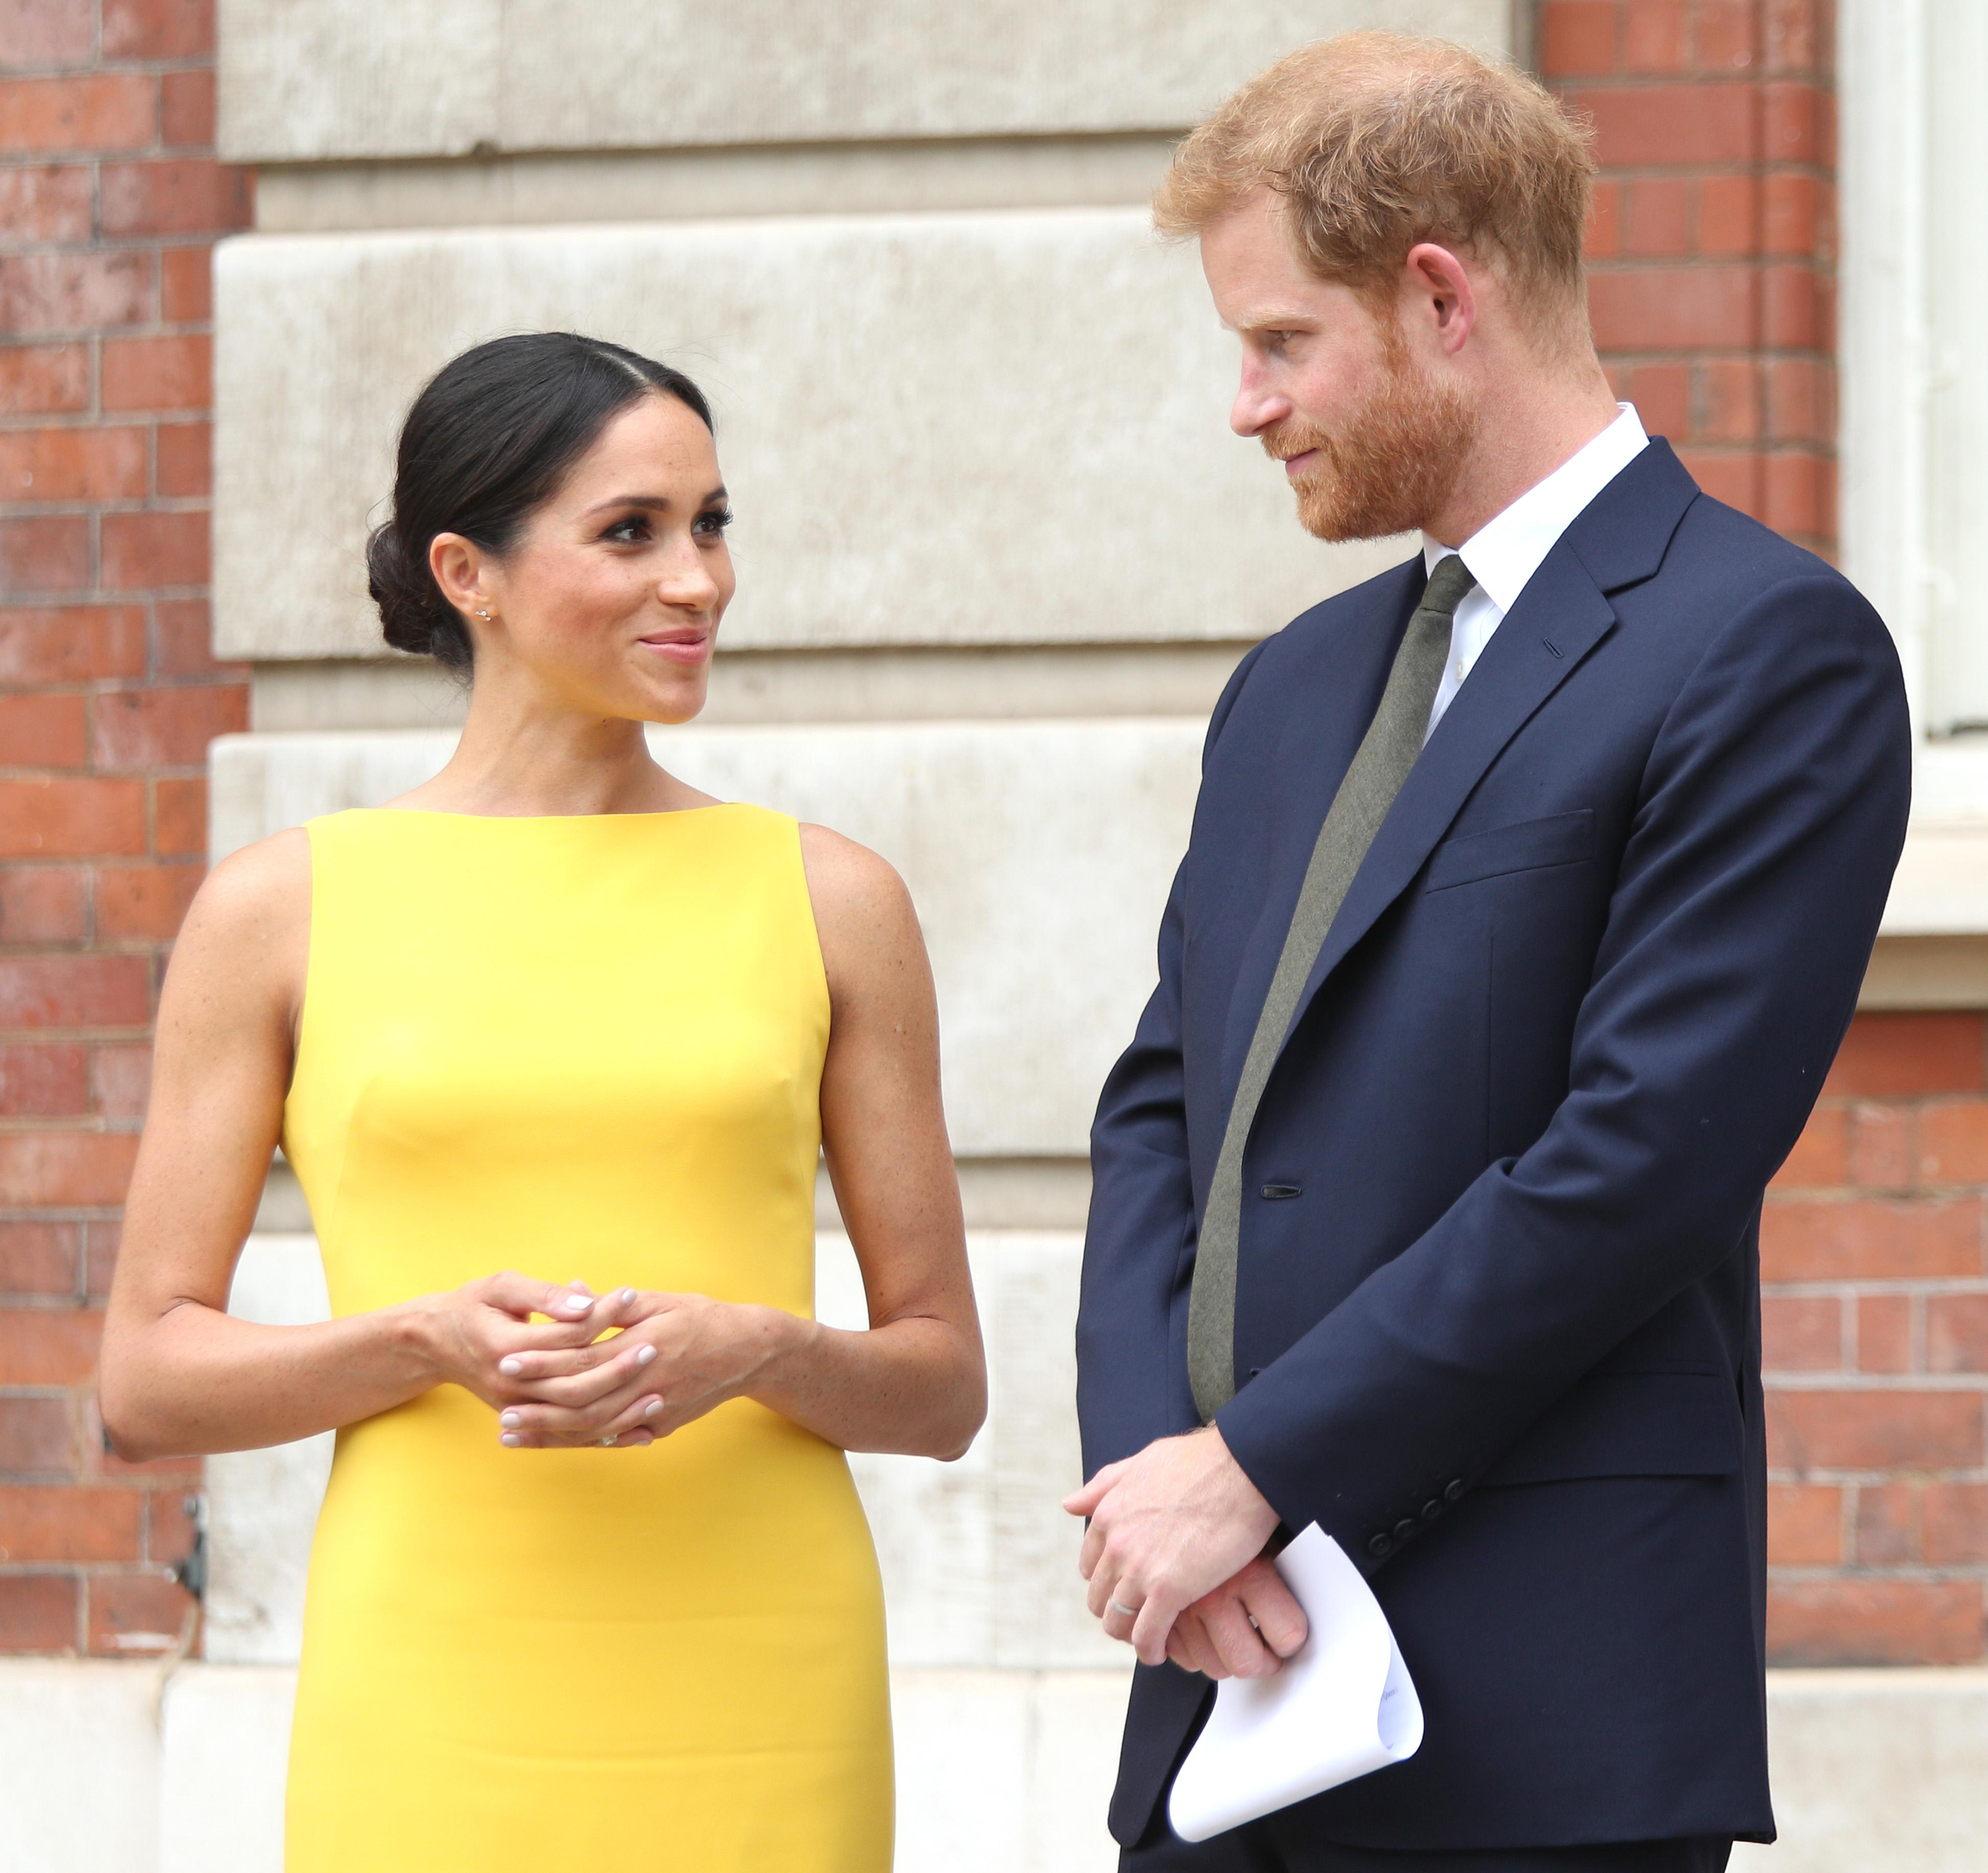 Here's What Meghan Markle And Prince Harry's Baby's Title